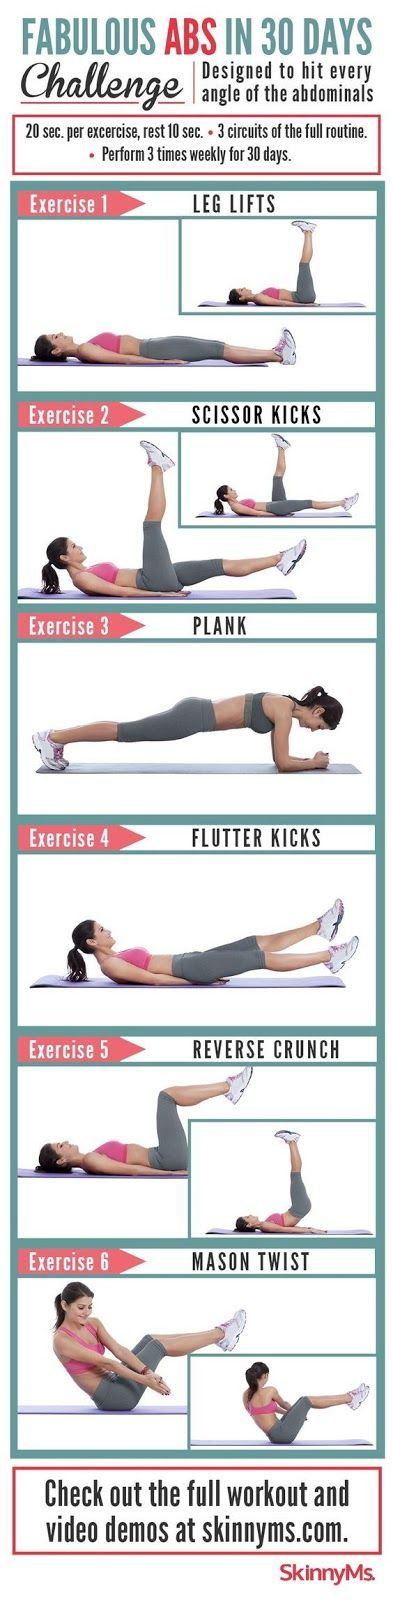 fab abs in 30 days